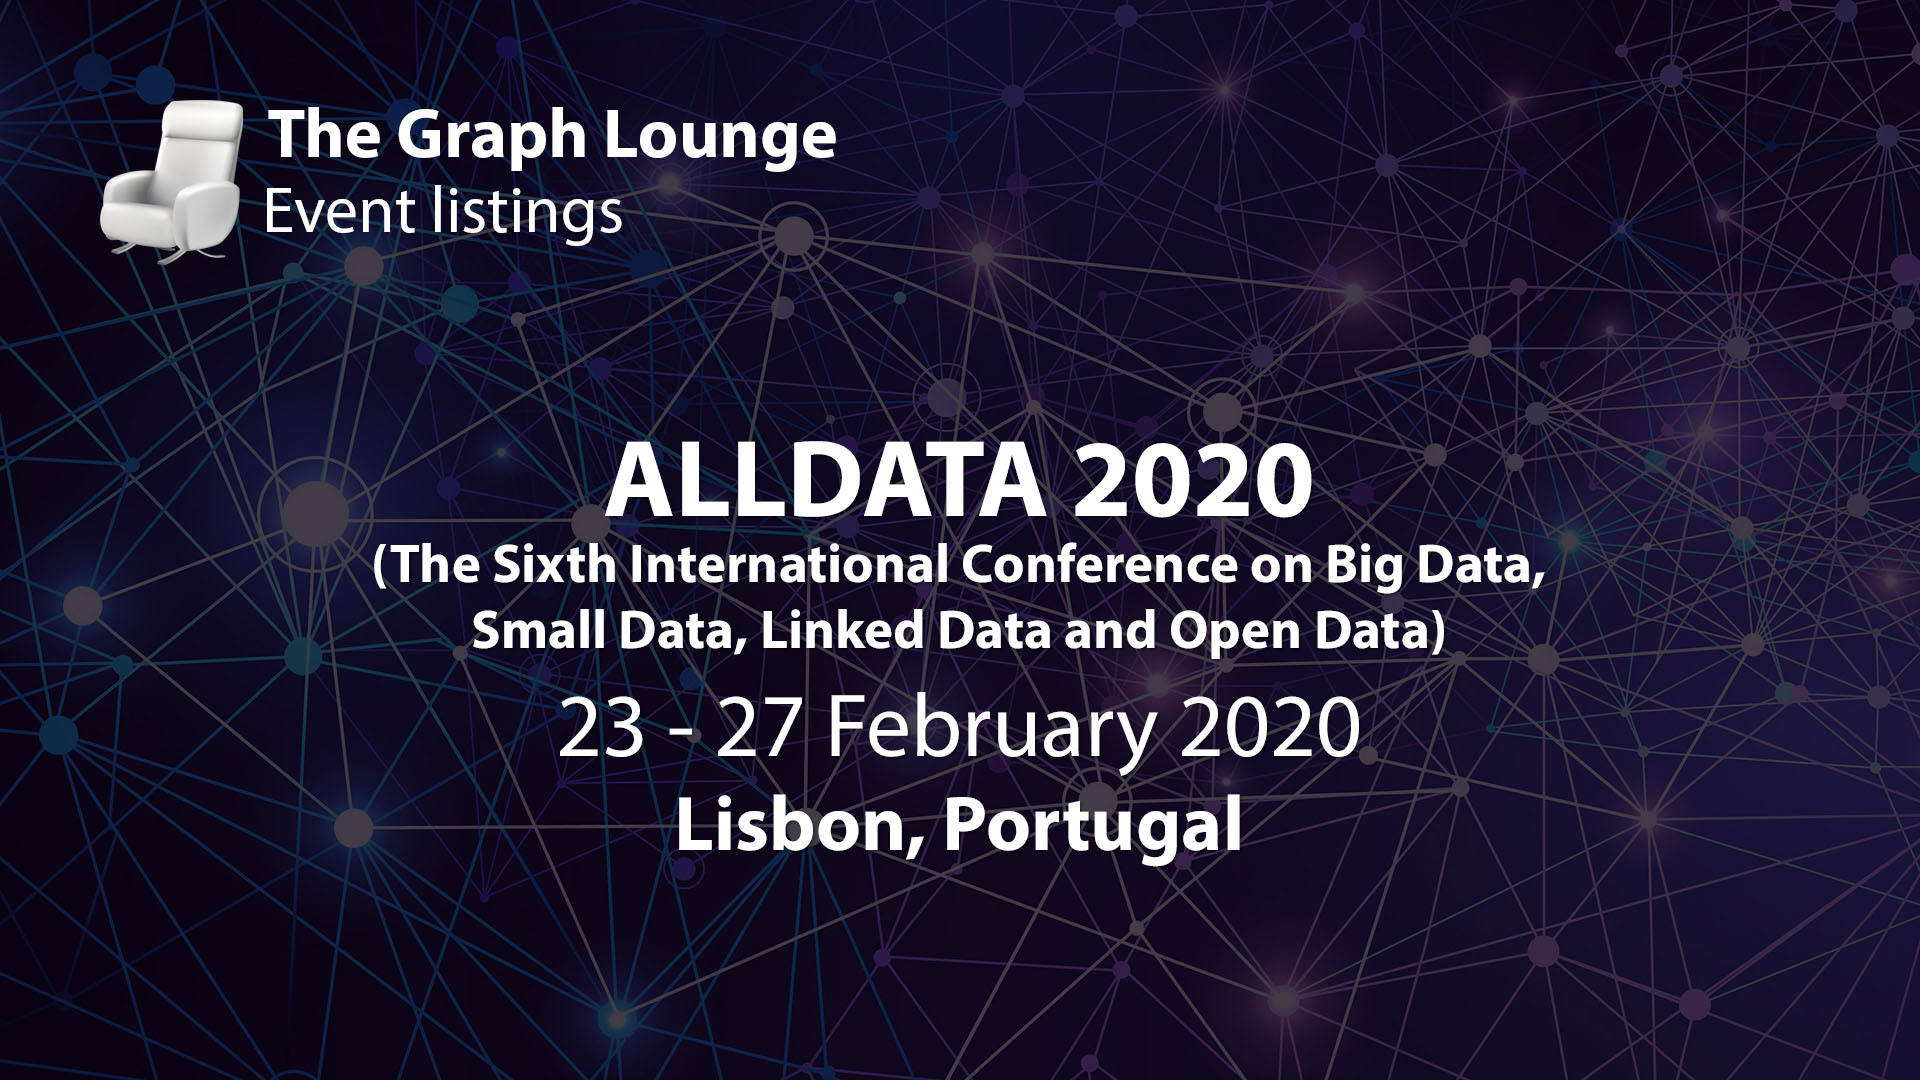 ALLDATA 2020 (The Sixth International Conference on Big Data, Small Data, Linked Data and Open Data)